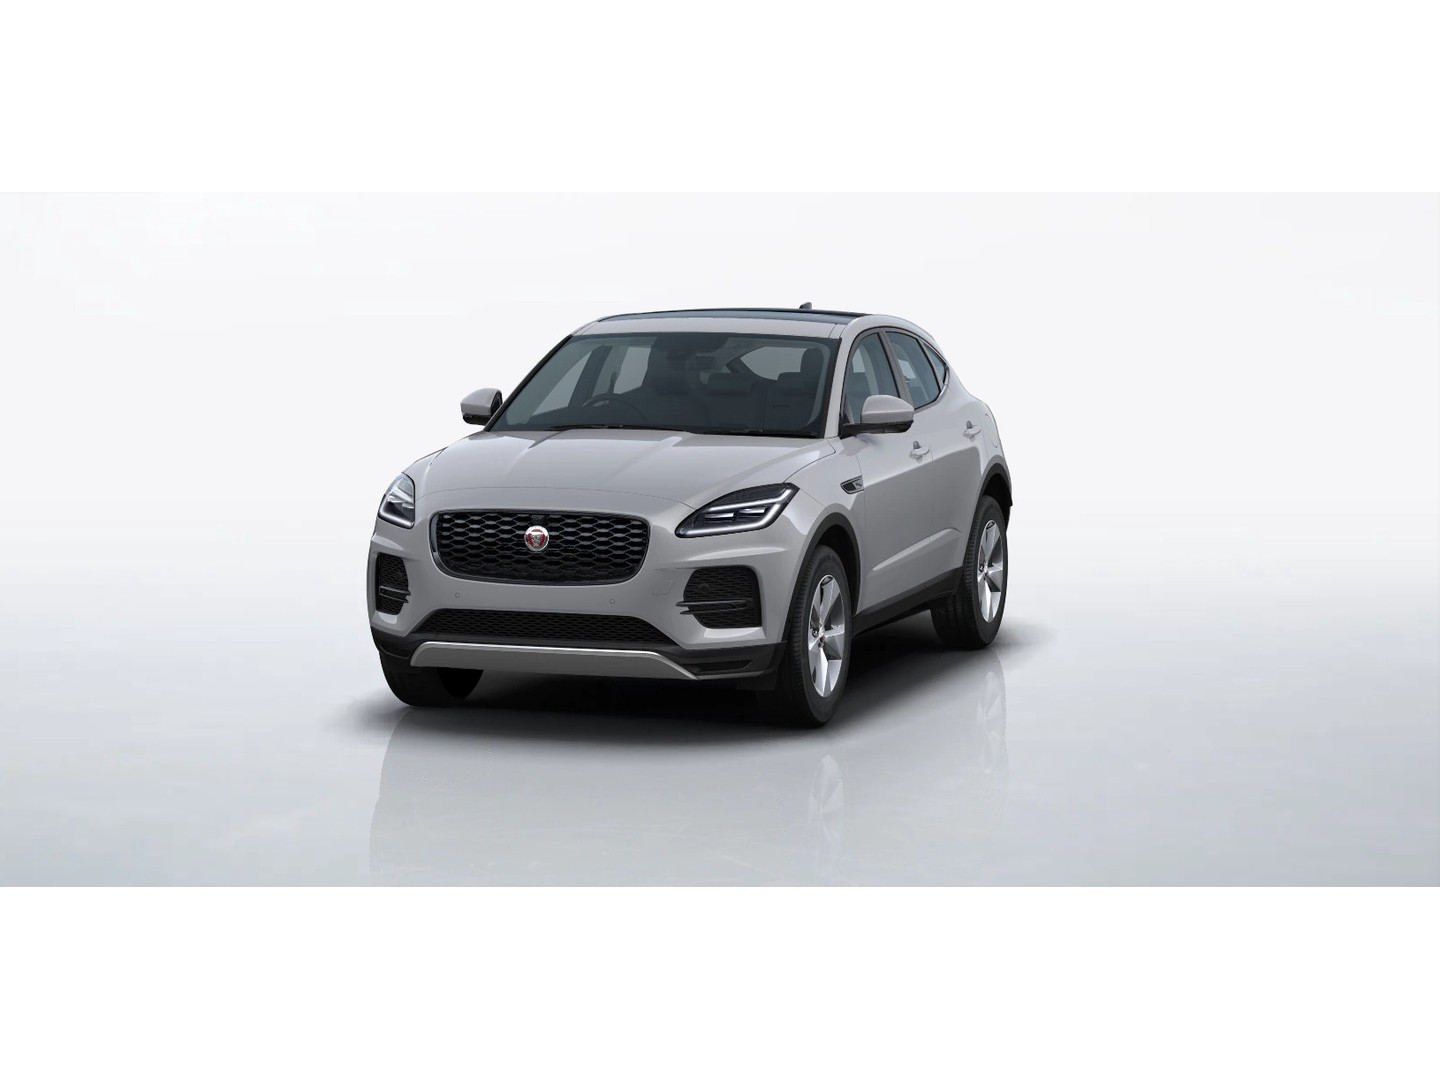 Jaguar E-pace 2.0 p160 s launch edition